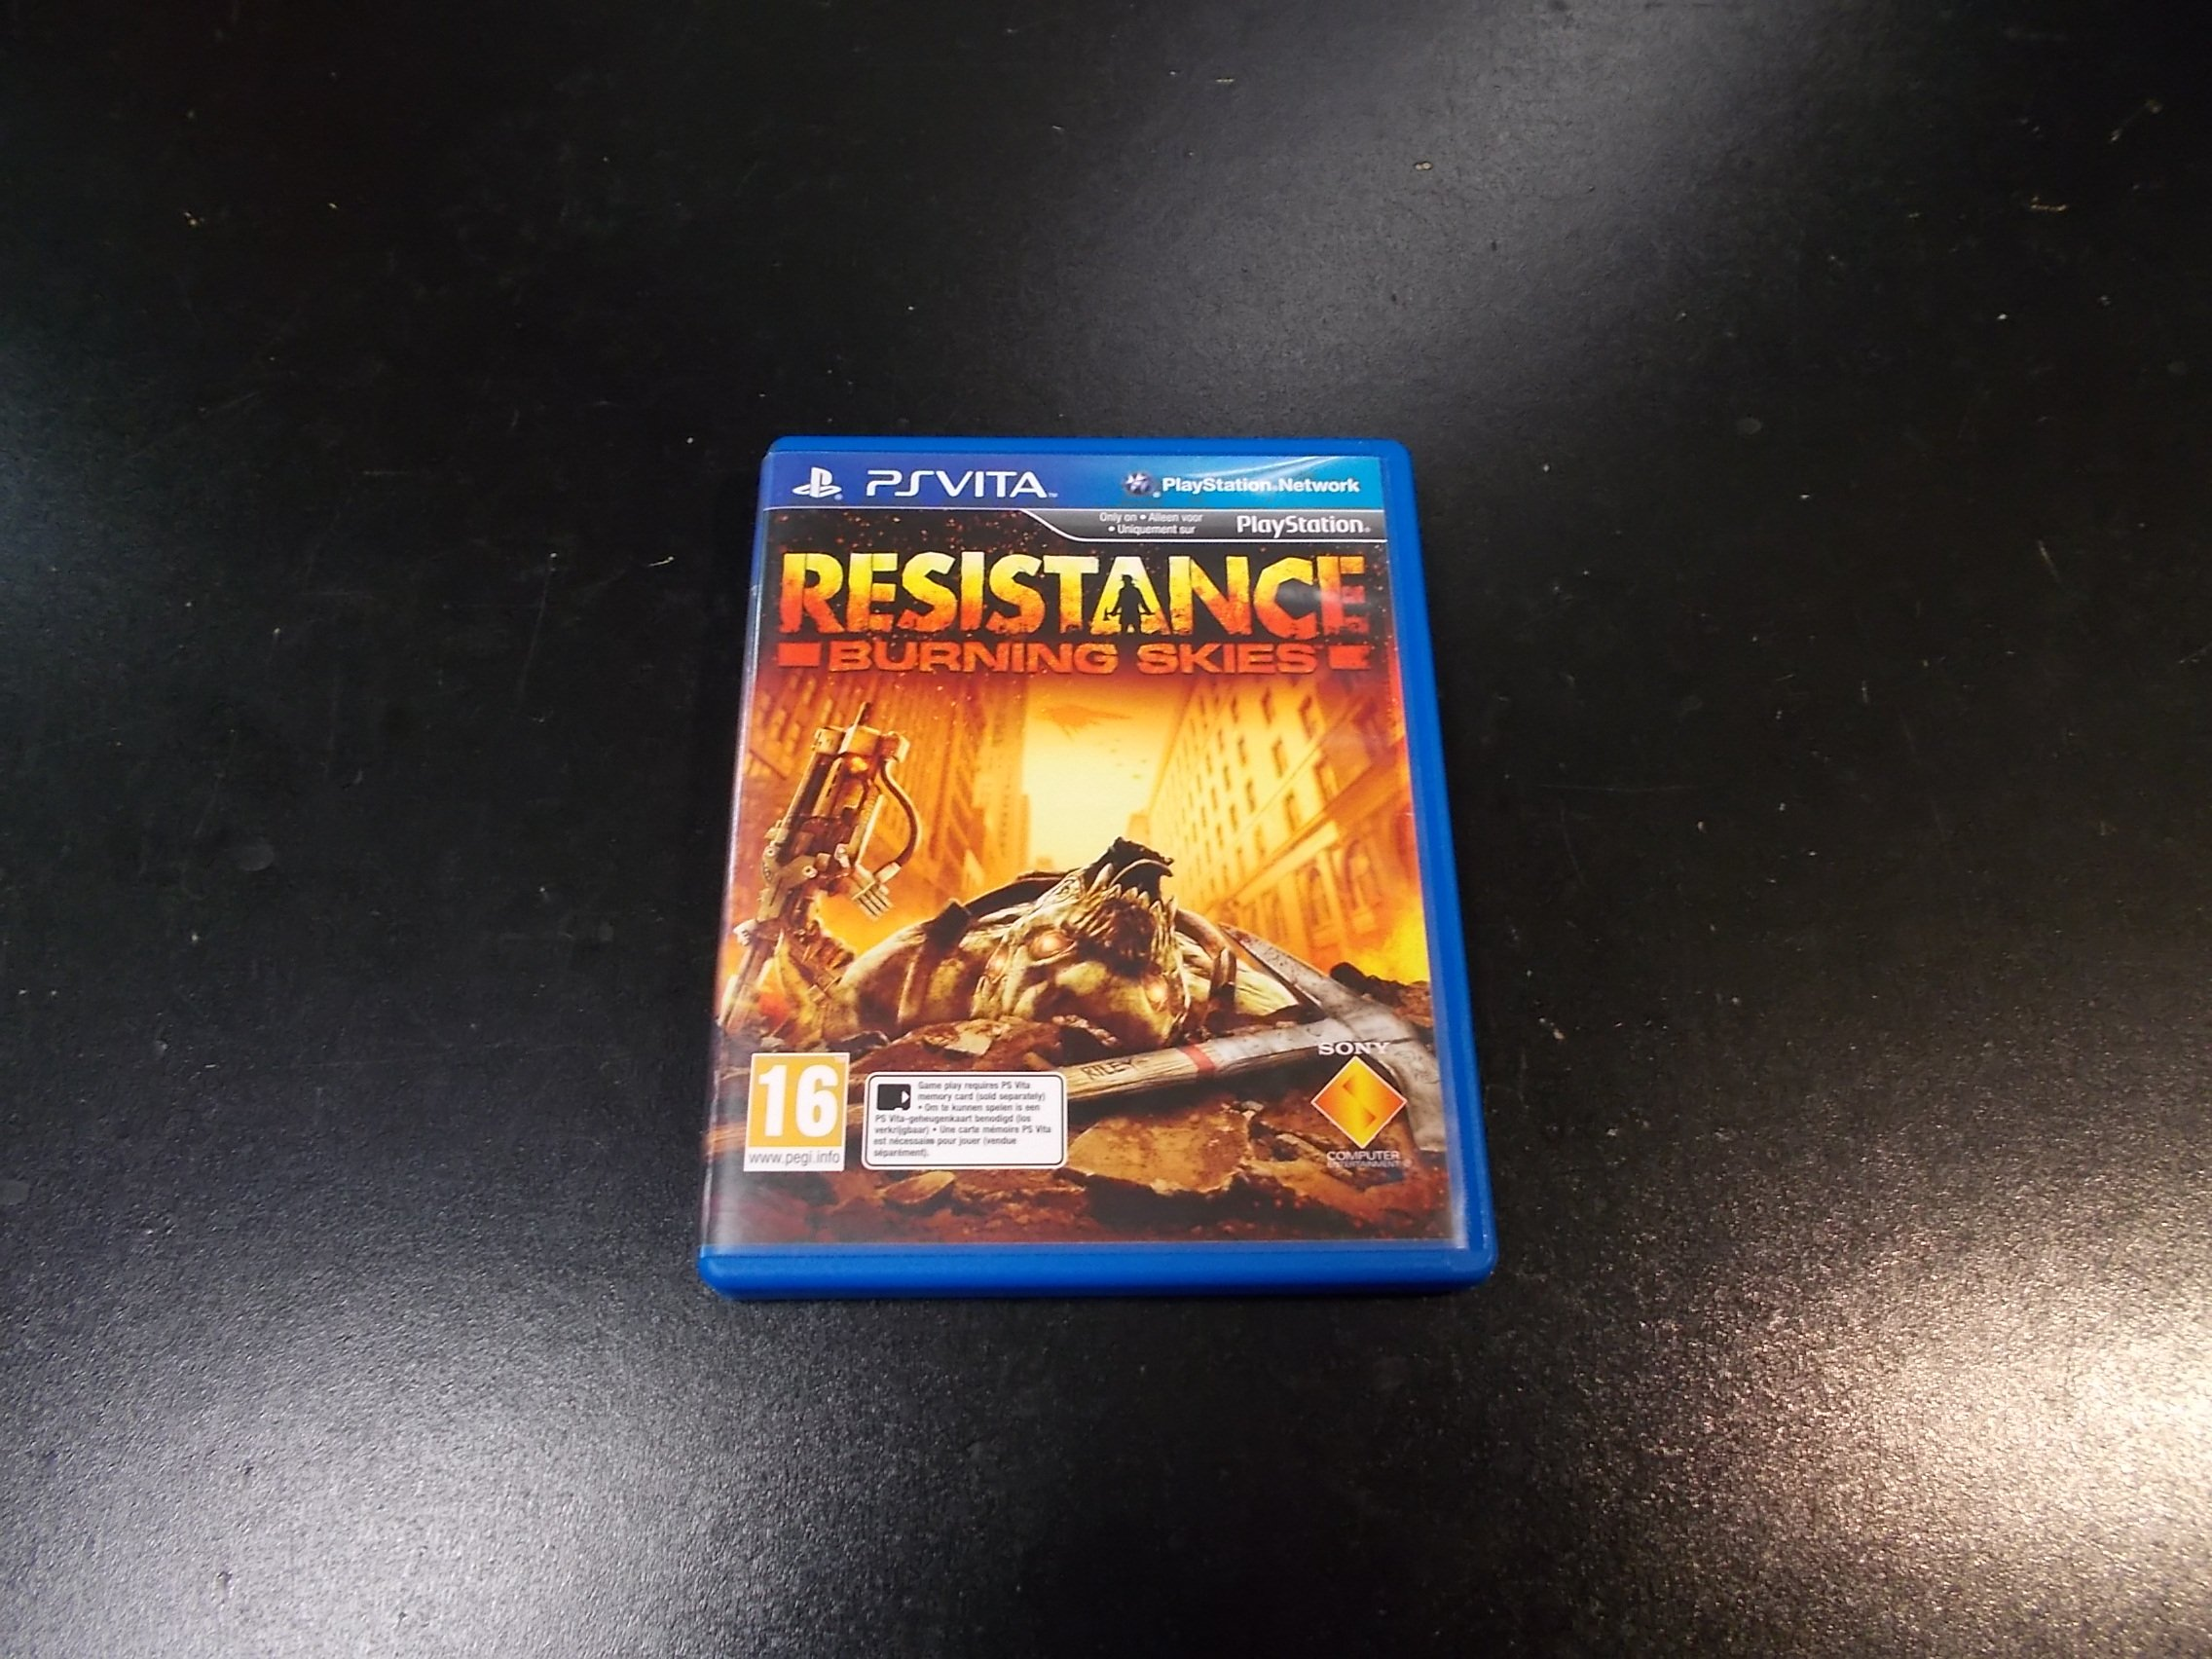 Resistance Burning Skies - GRA Ps Vita Sklep